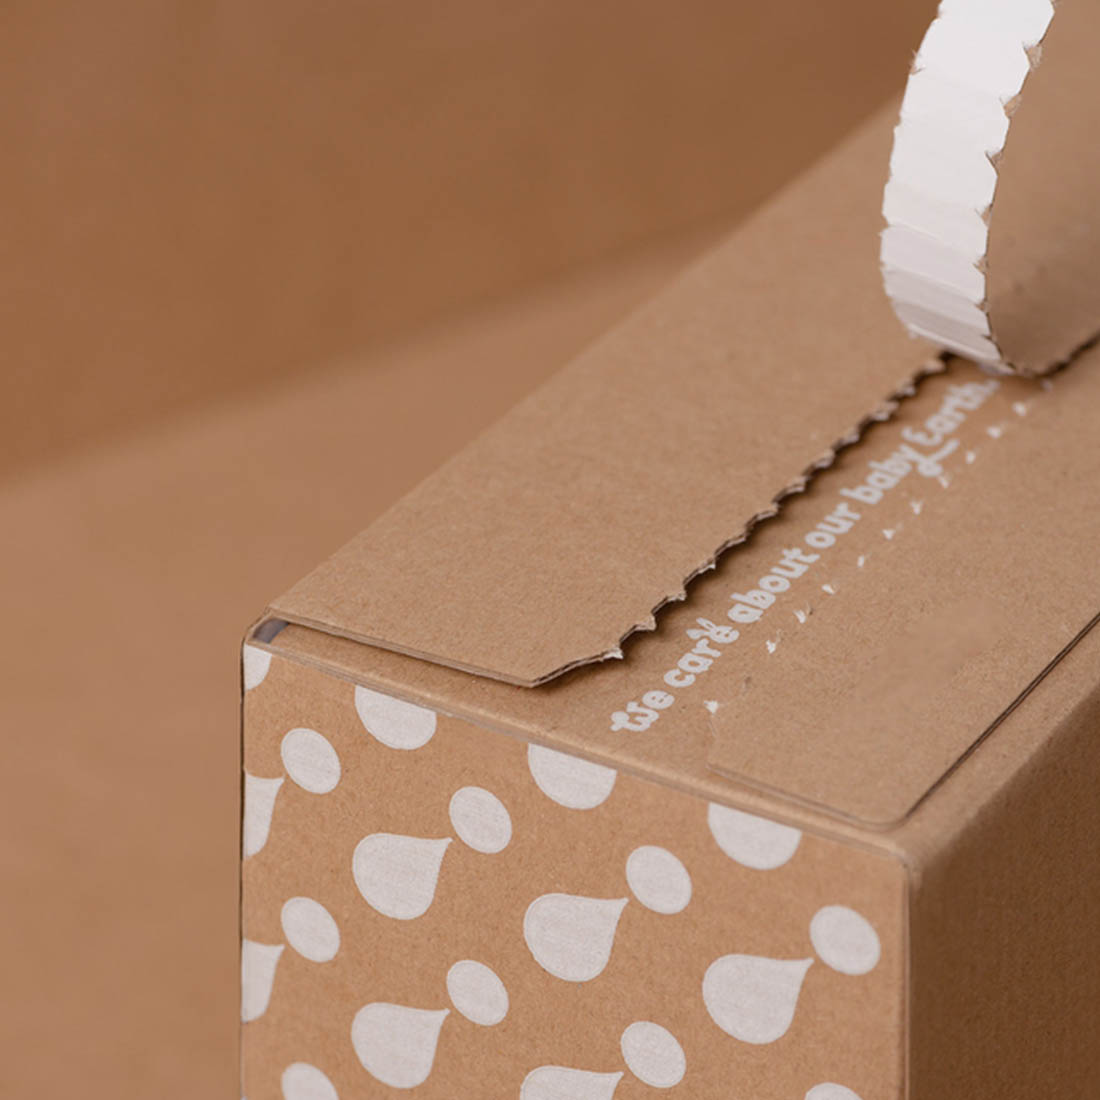 One-color print on take-away packaging is cheaper than multicolored.